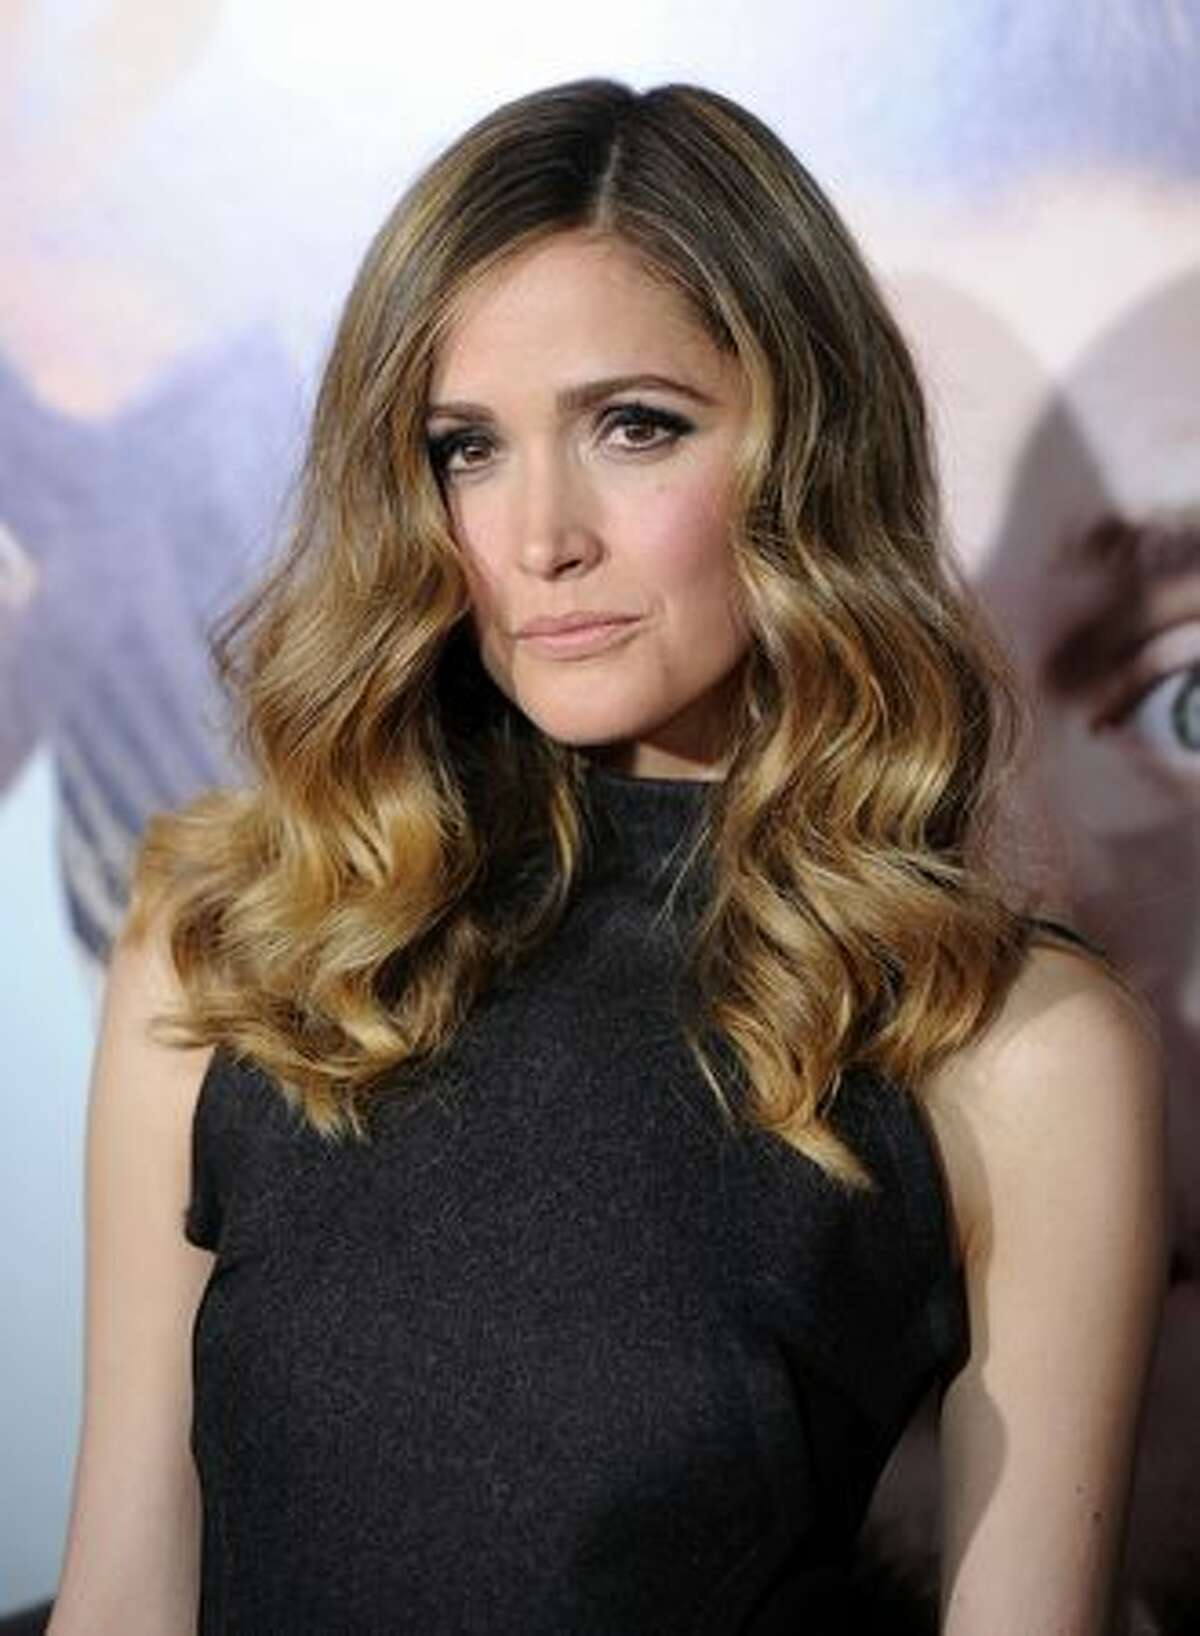 """Actress Rose Byrne arrives at the premiere of Universal Pictures' """"Get Him To The Greek"""" held at the Greek Theatre in Los Angeles, California."""